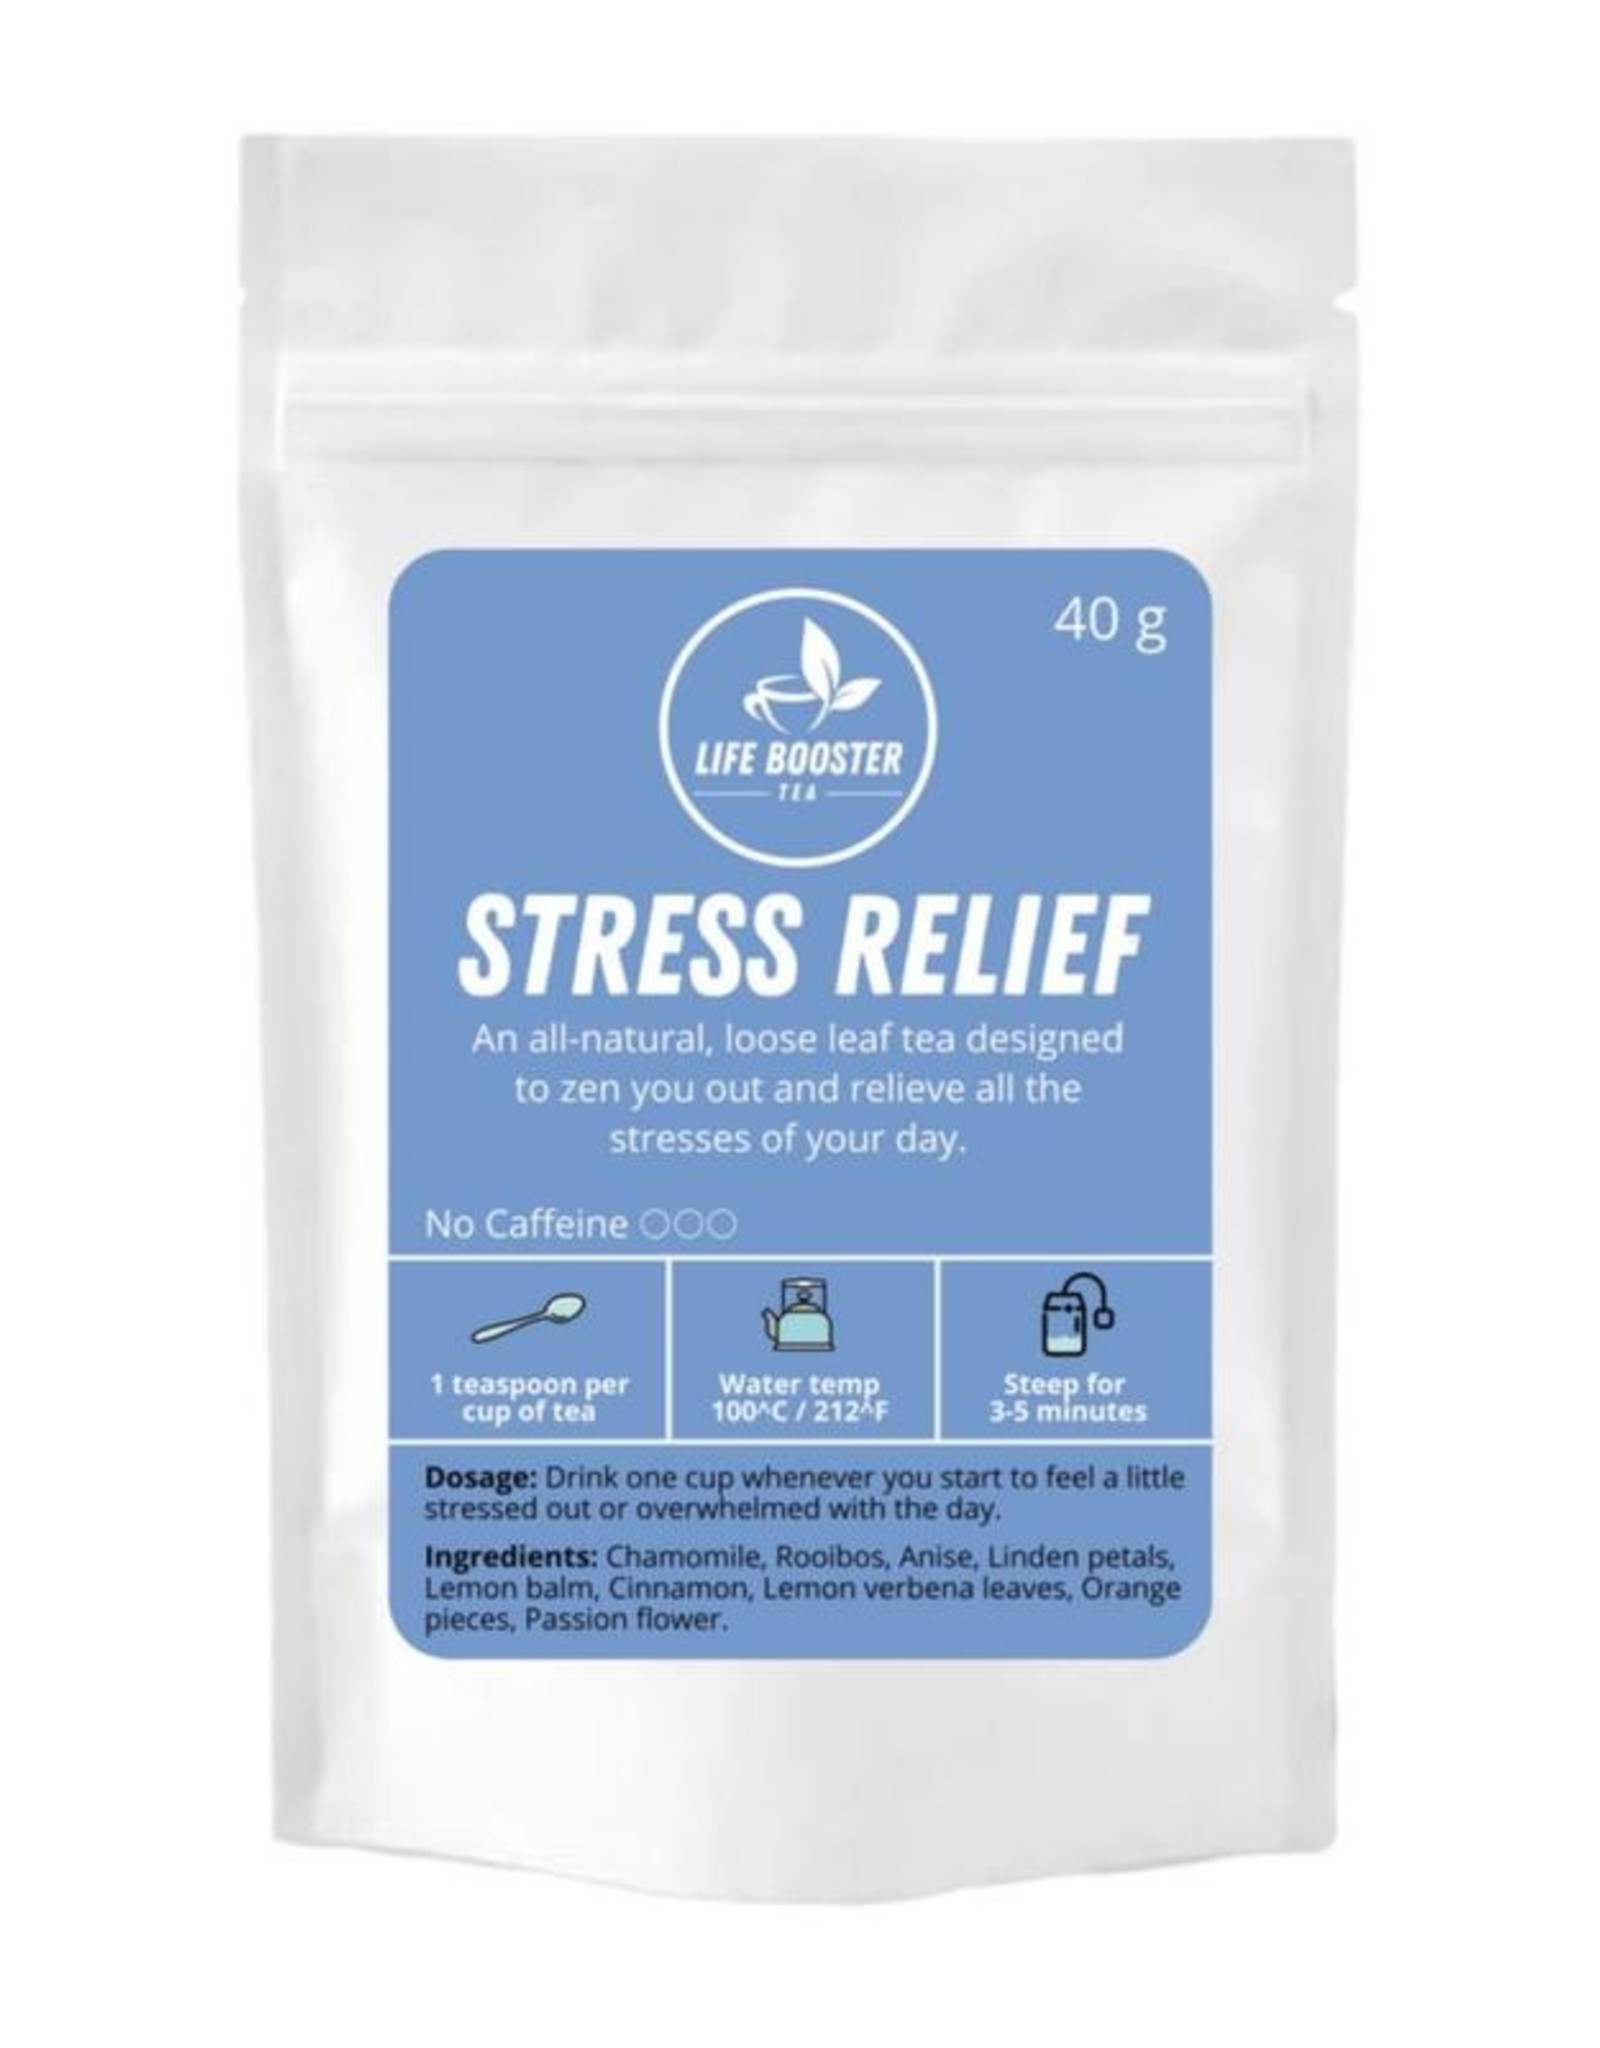 Life Booster Tea - Stress Relief